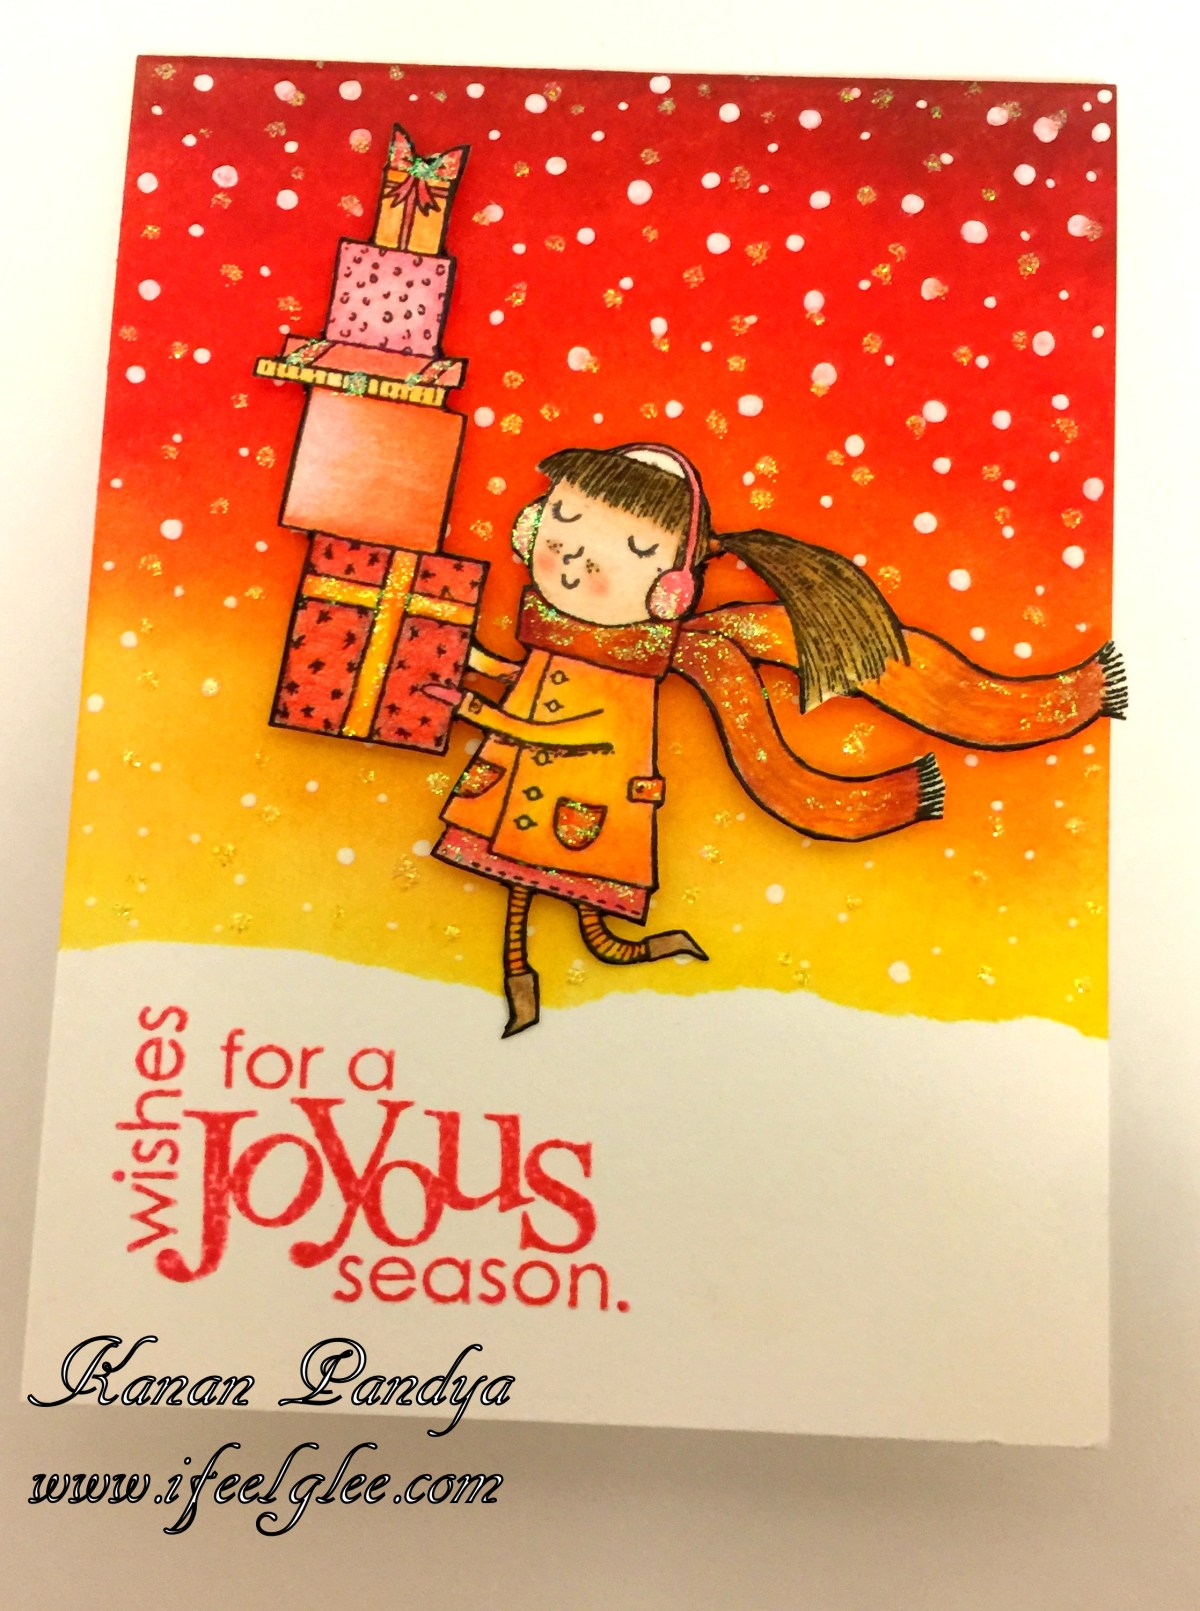 Wishes For A Joyous Season.